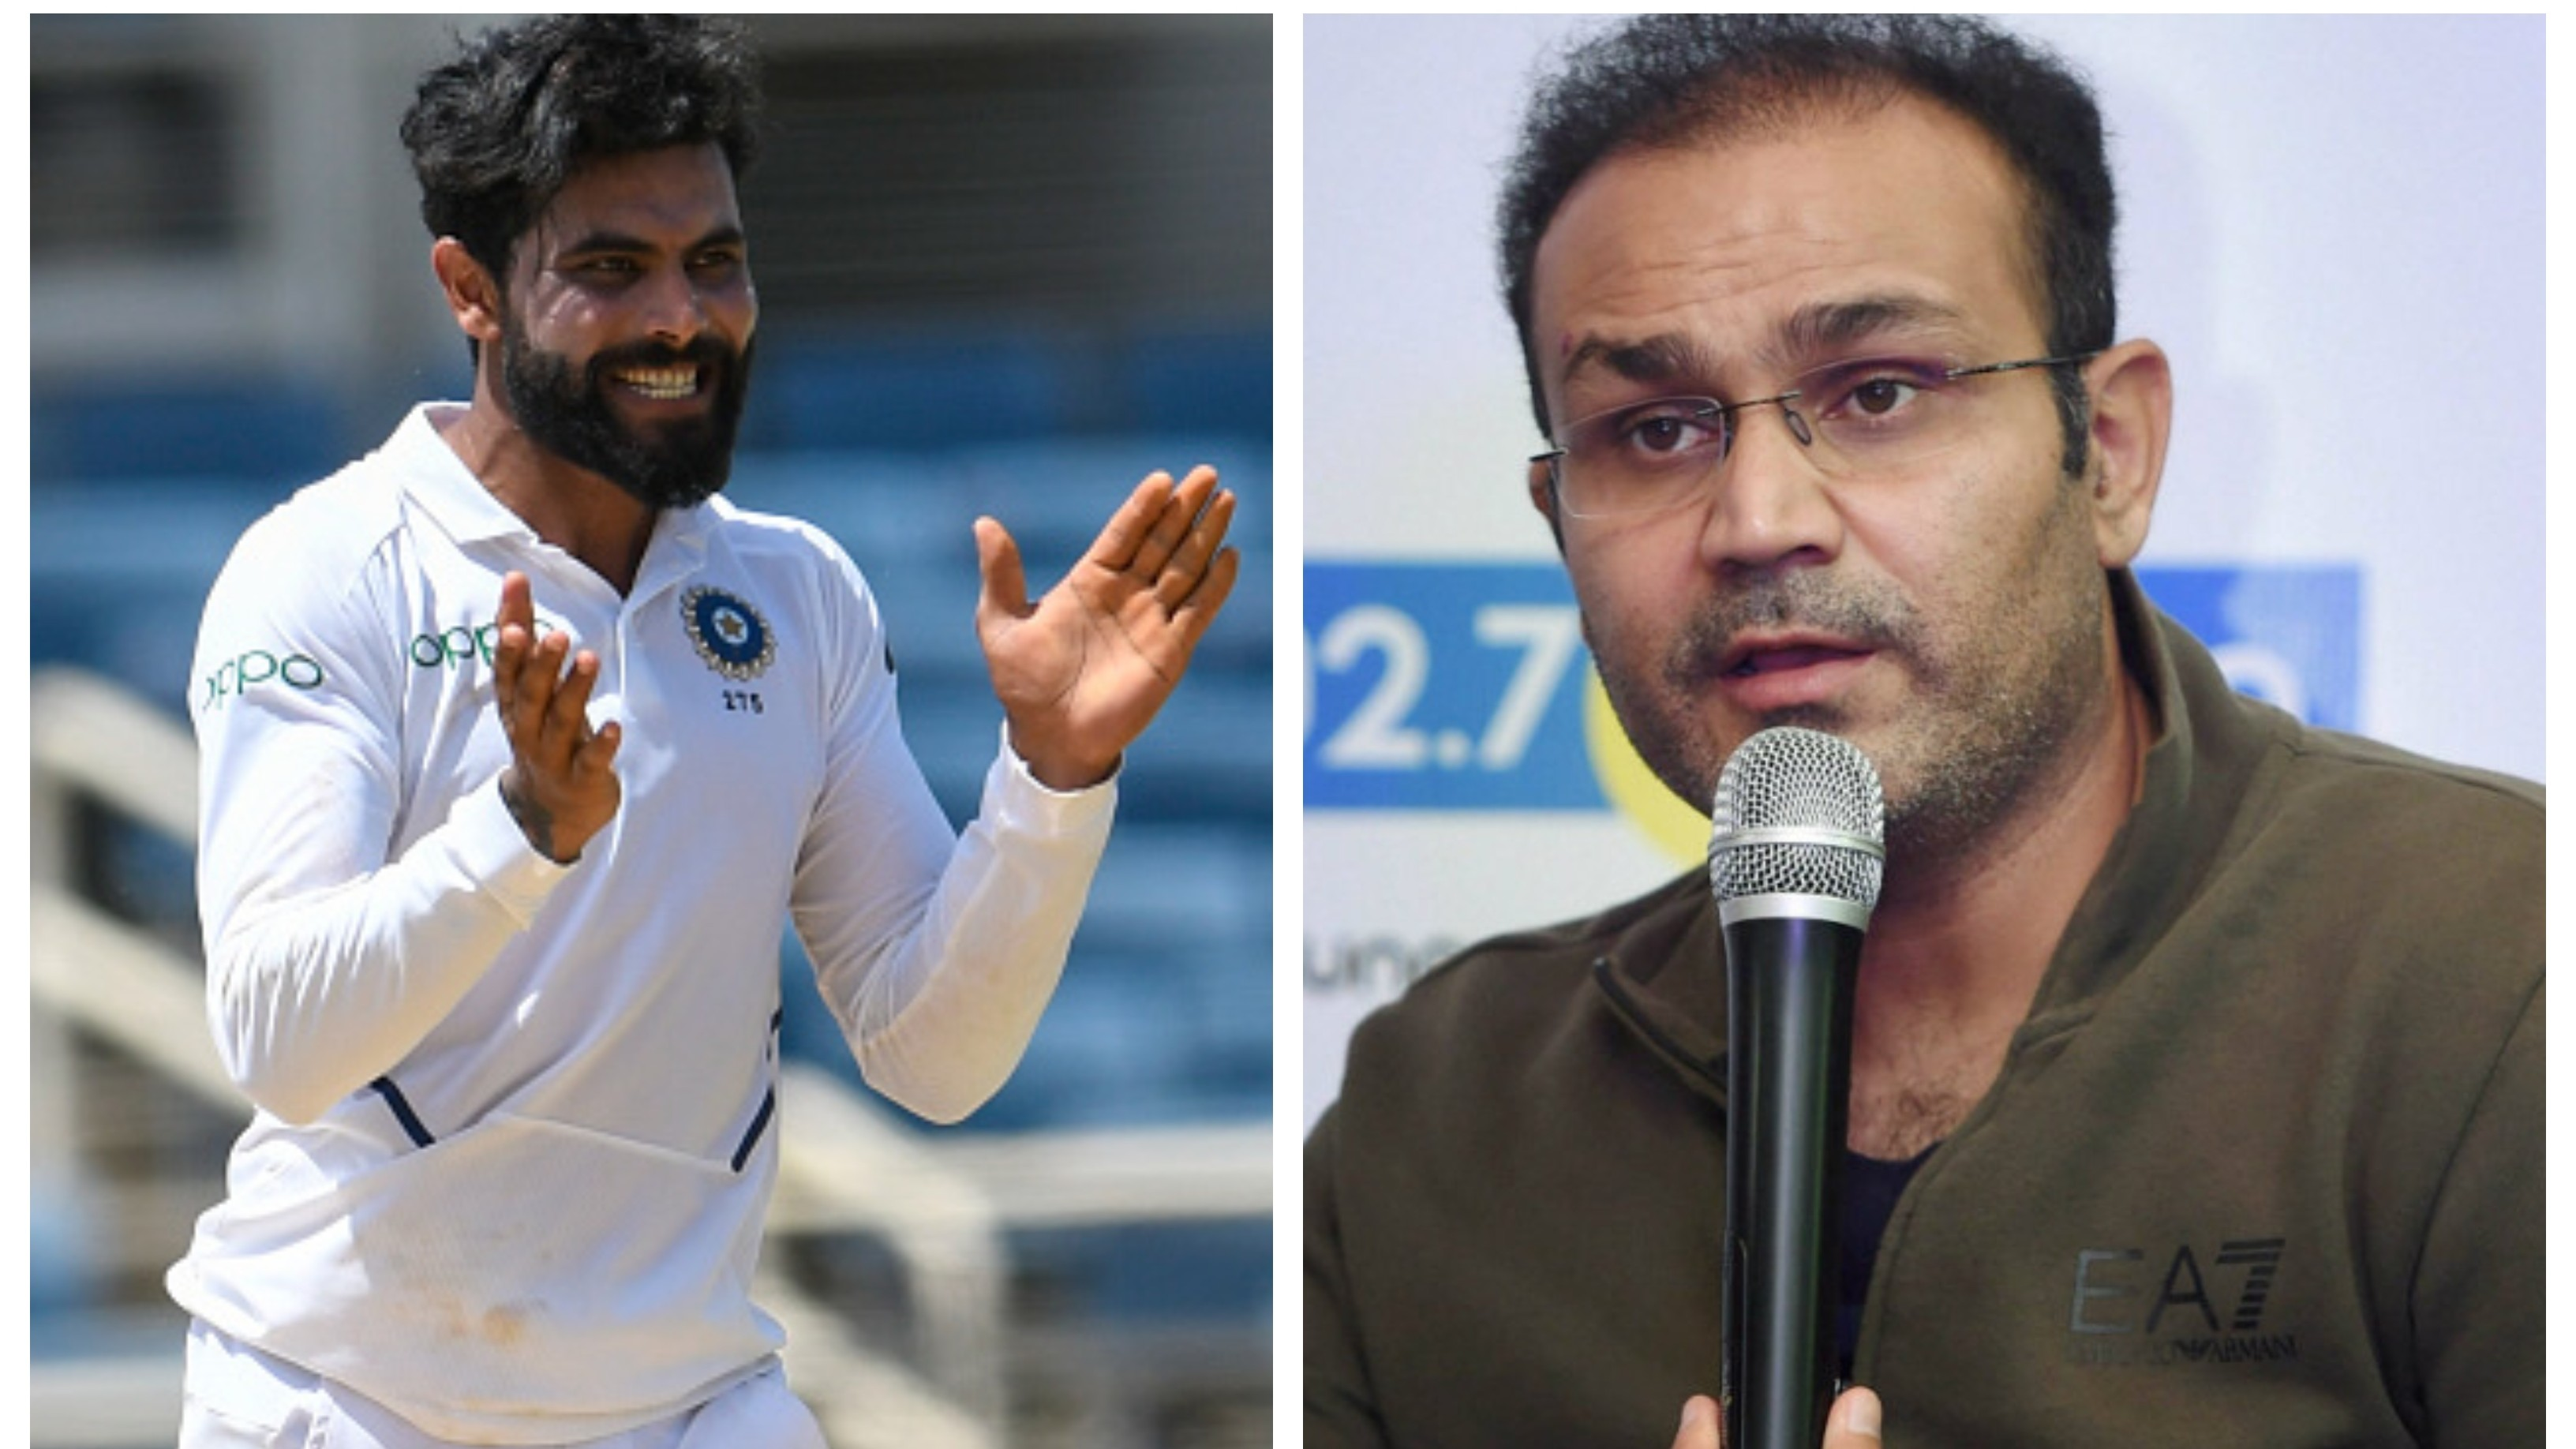 IND v SA 2019: Jadeja's recent retweet suggests his displeasure with Sehwag's social media activity